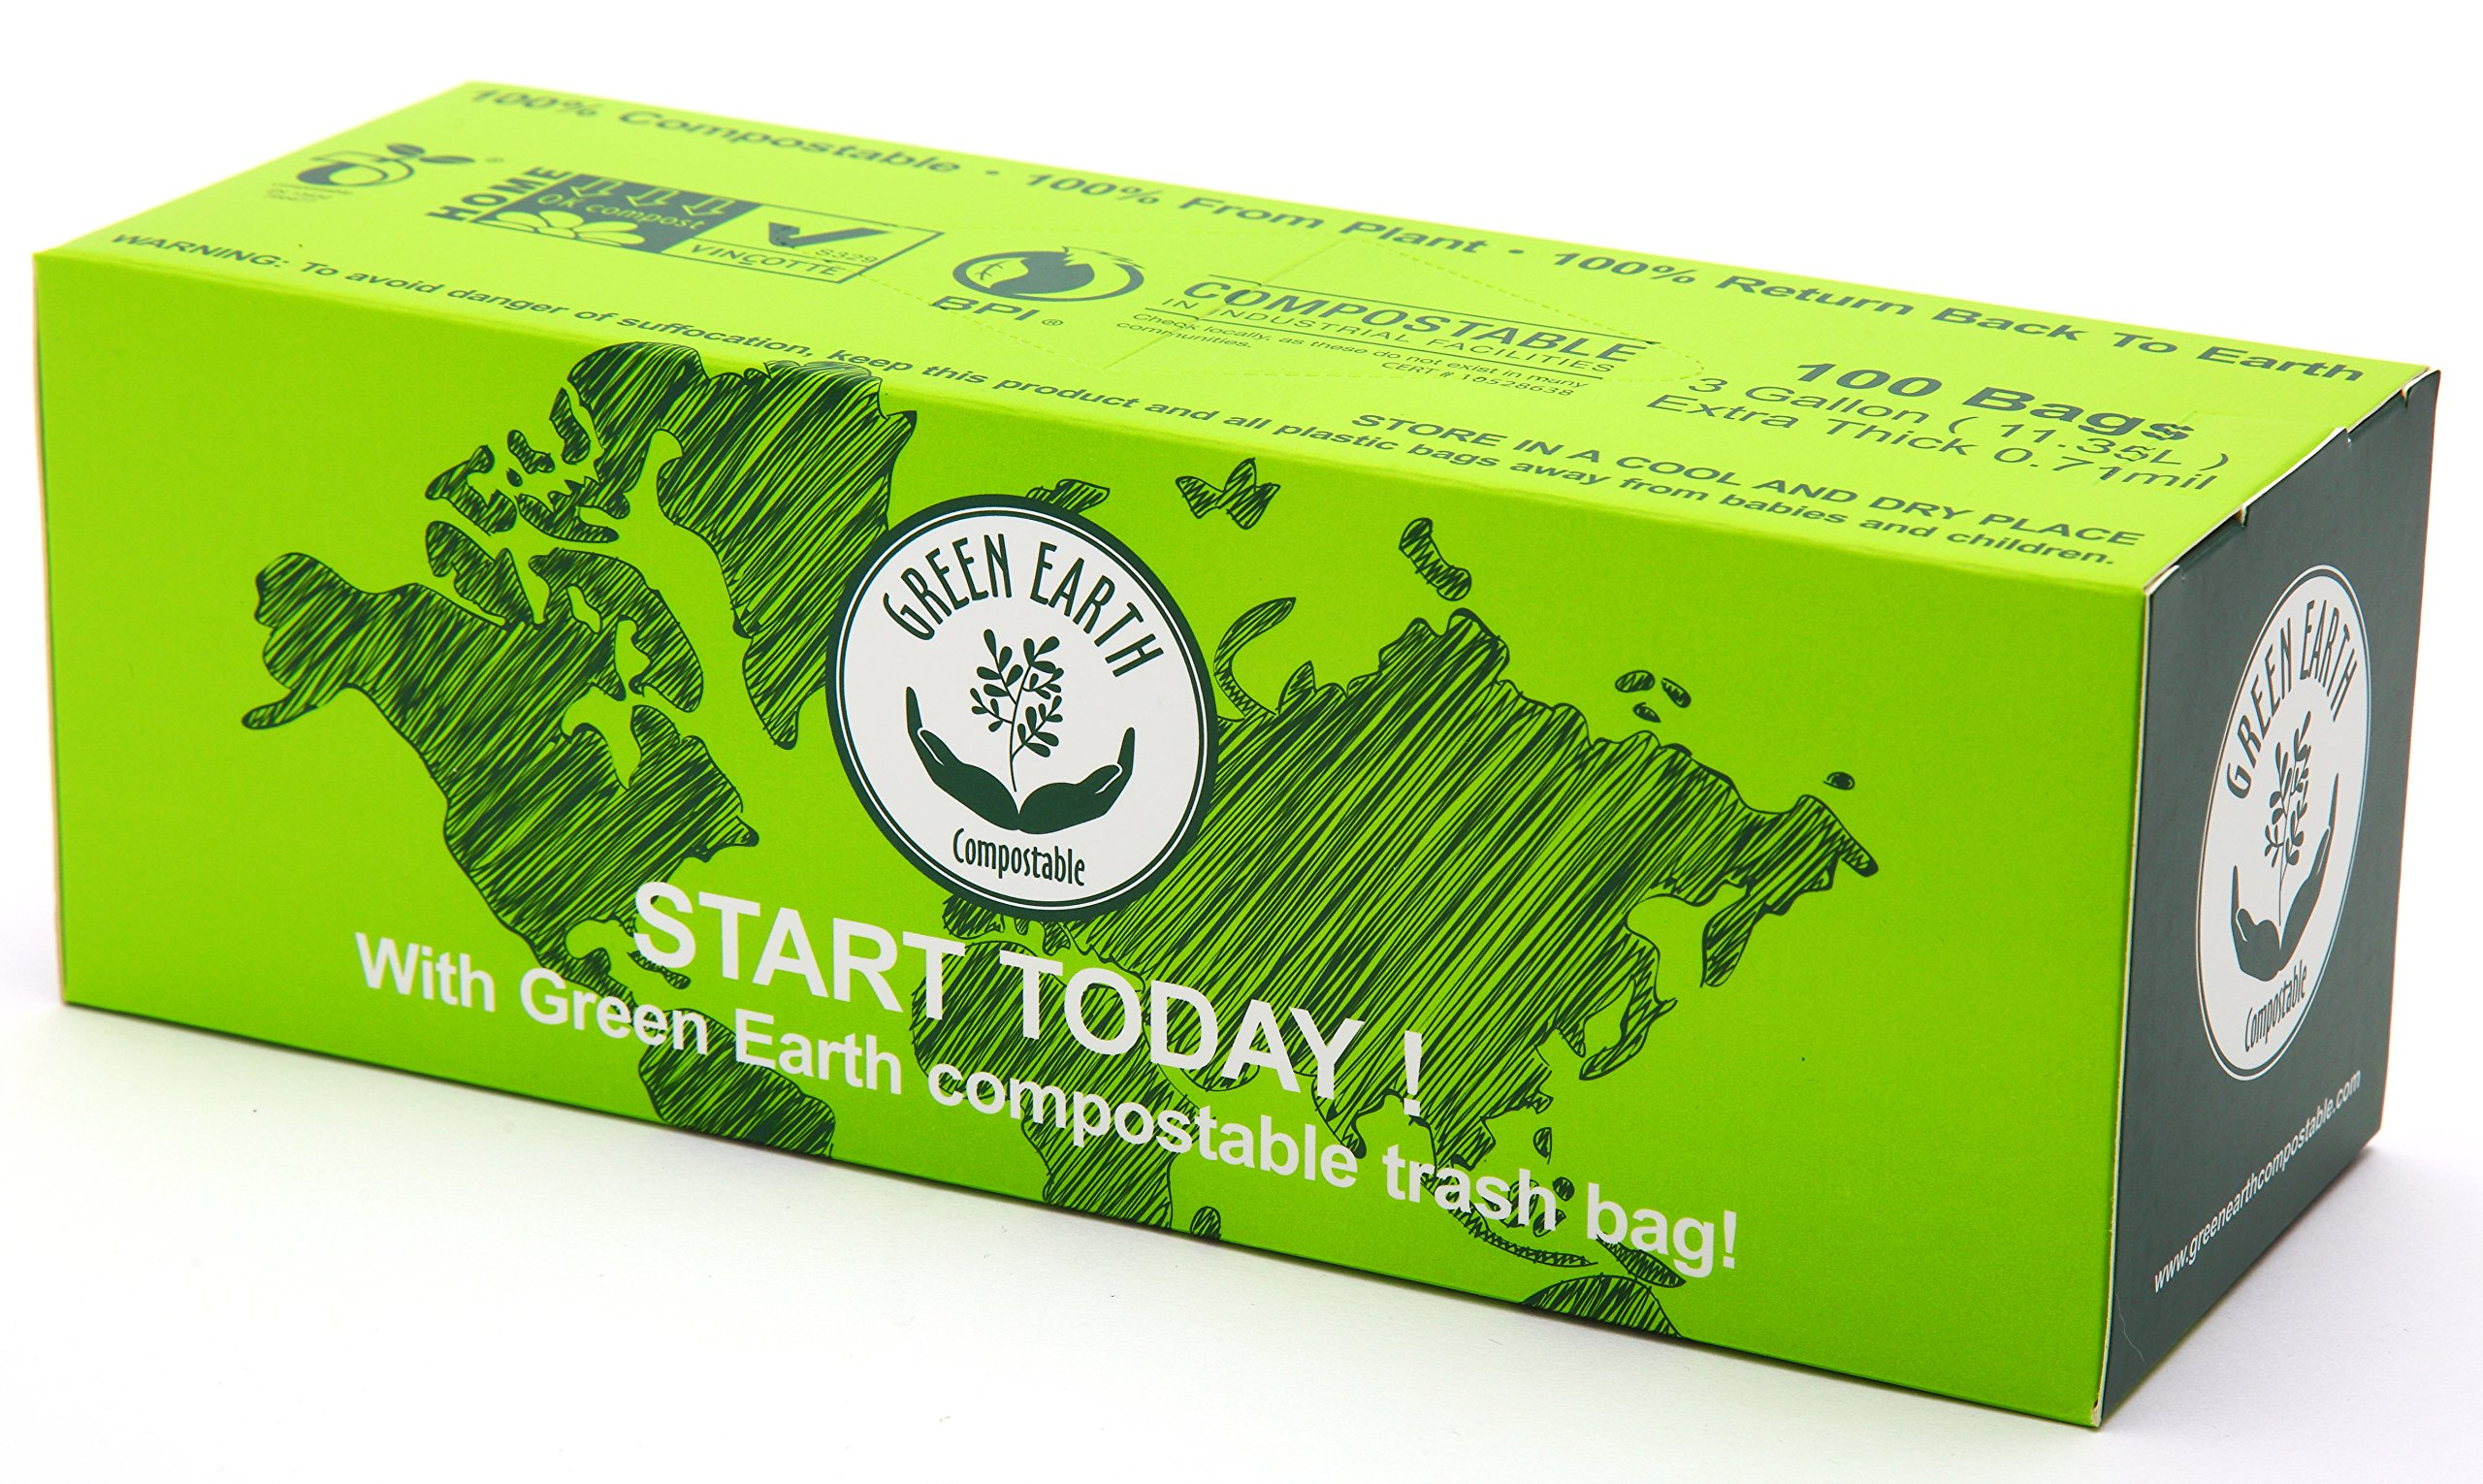 Green Earth CompostableBiodegradable Food Scraps Waste Kitchen Trash Bags, 900-Count, 3 Gallon, Superior Strength 0.71 Mils Thickness, US BPI, Europ VINCOTTE OK Compost HOME & ASTM6400 Certificated